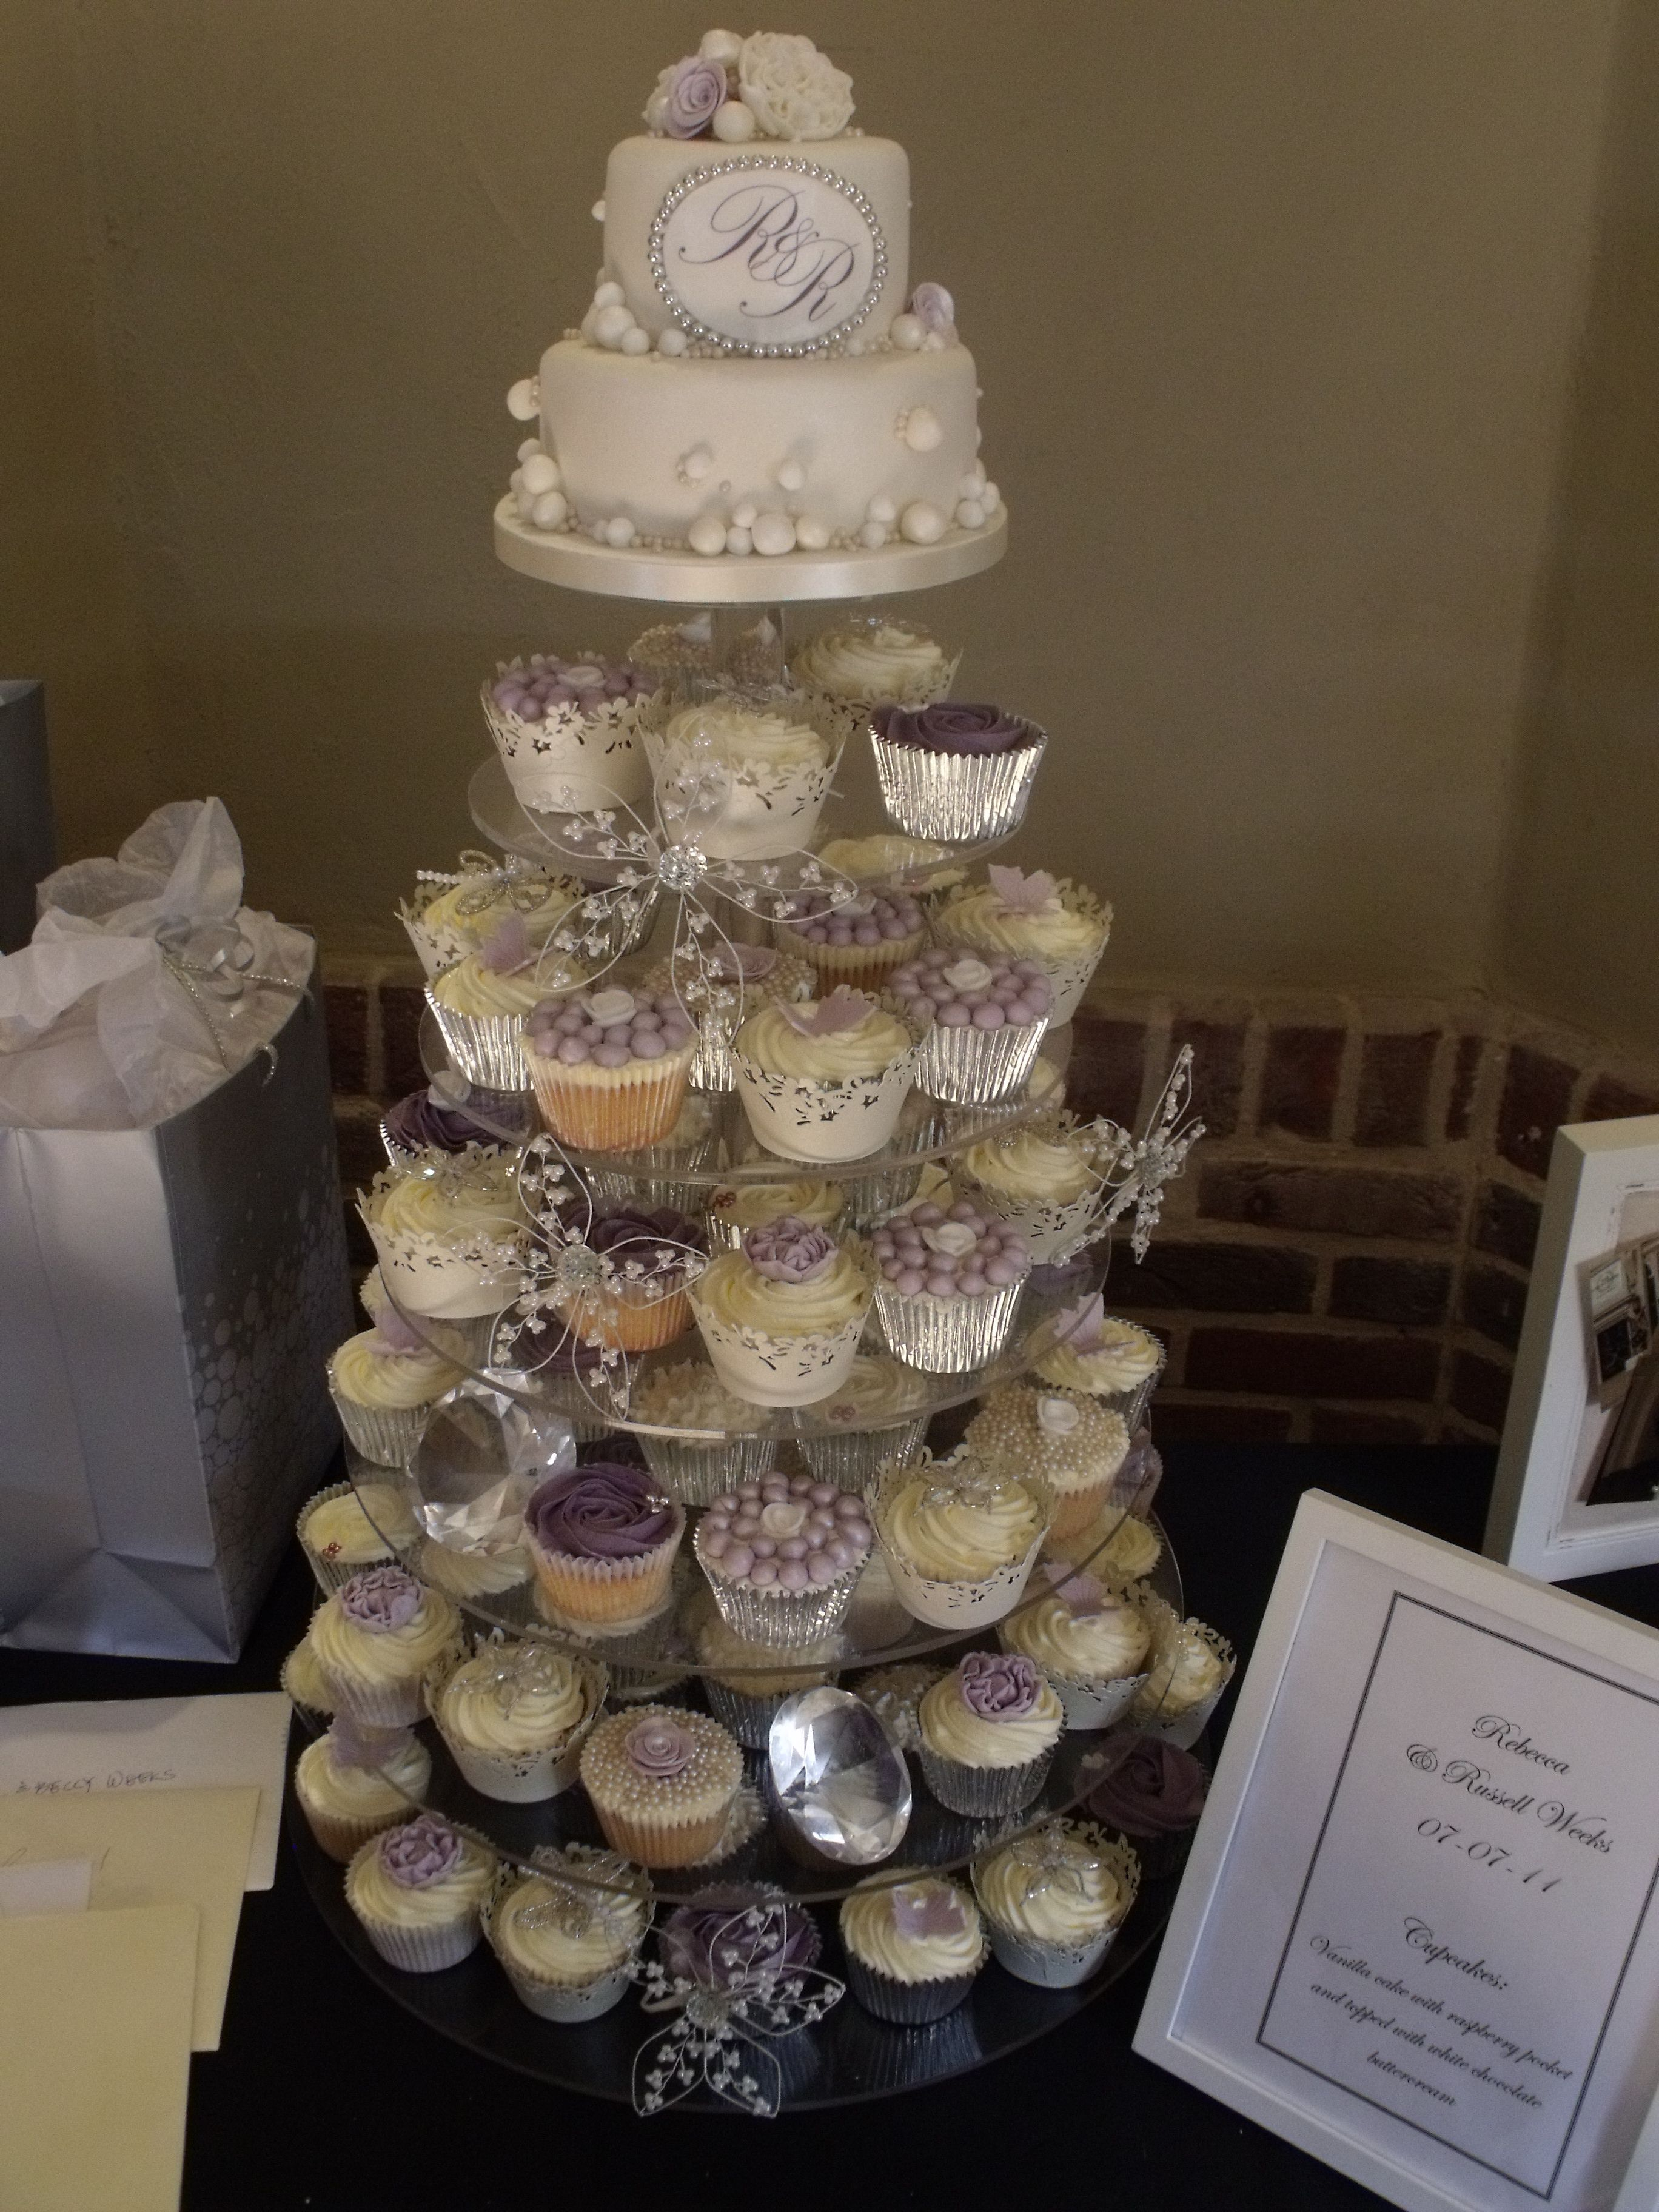 Vintage Cupcake Tower Very Cute For A Wedding I Have An Obsession With Cupcakes Versus Cake